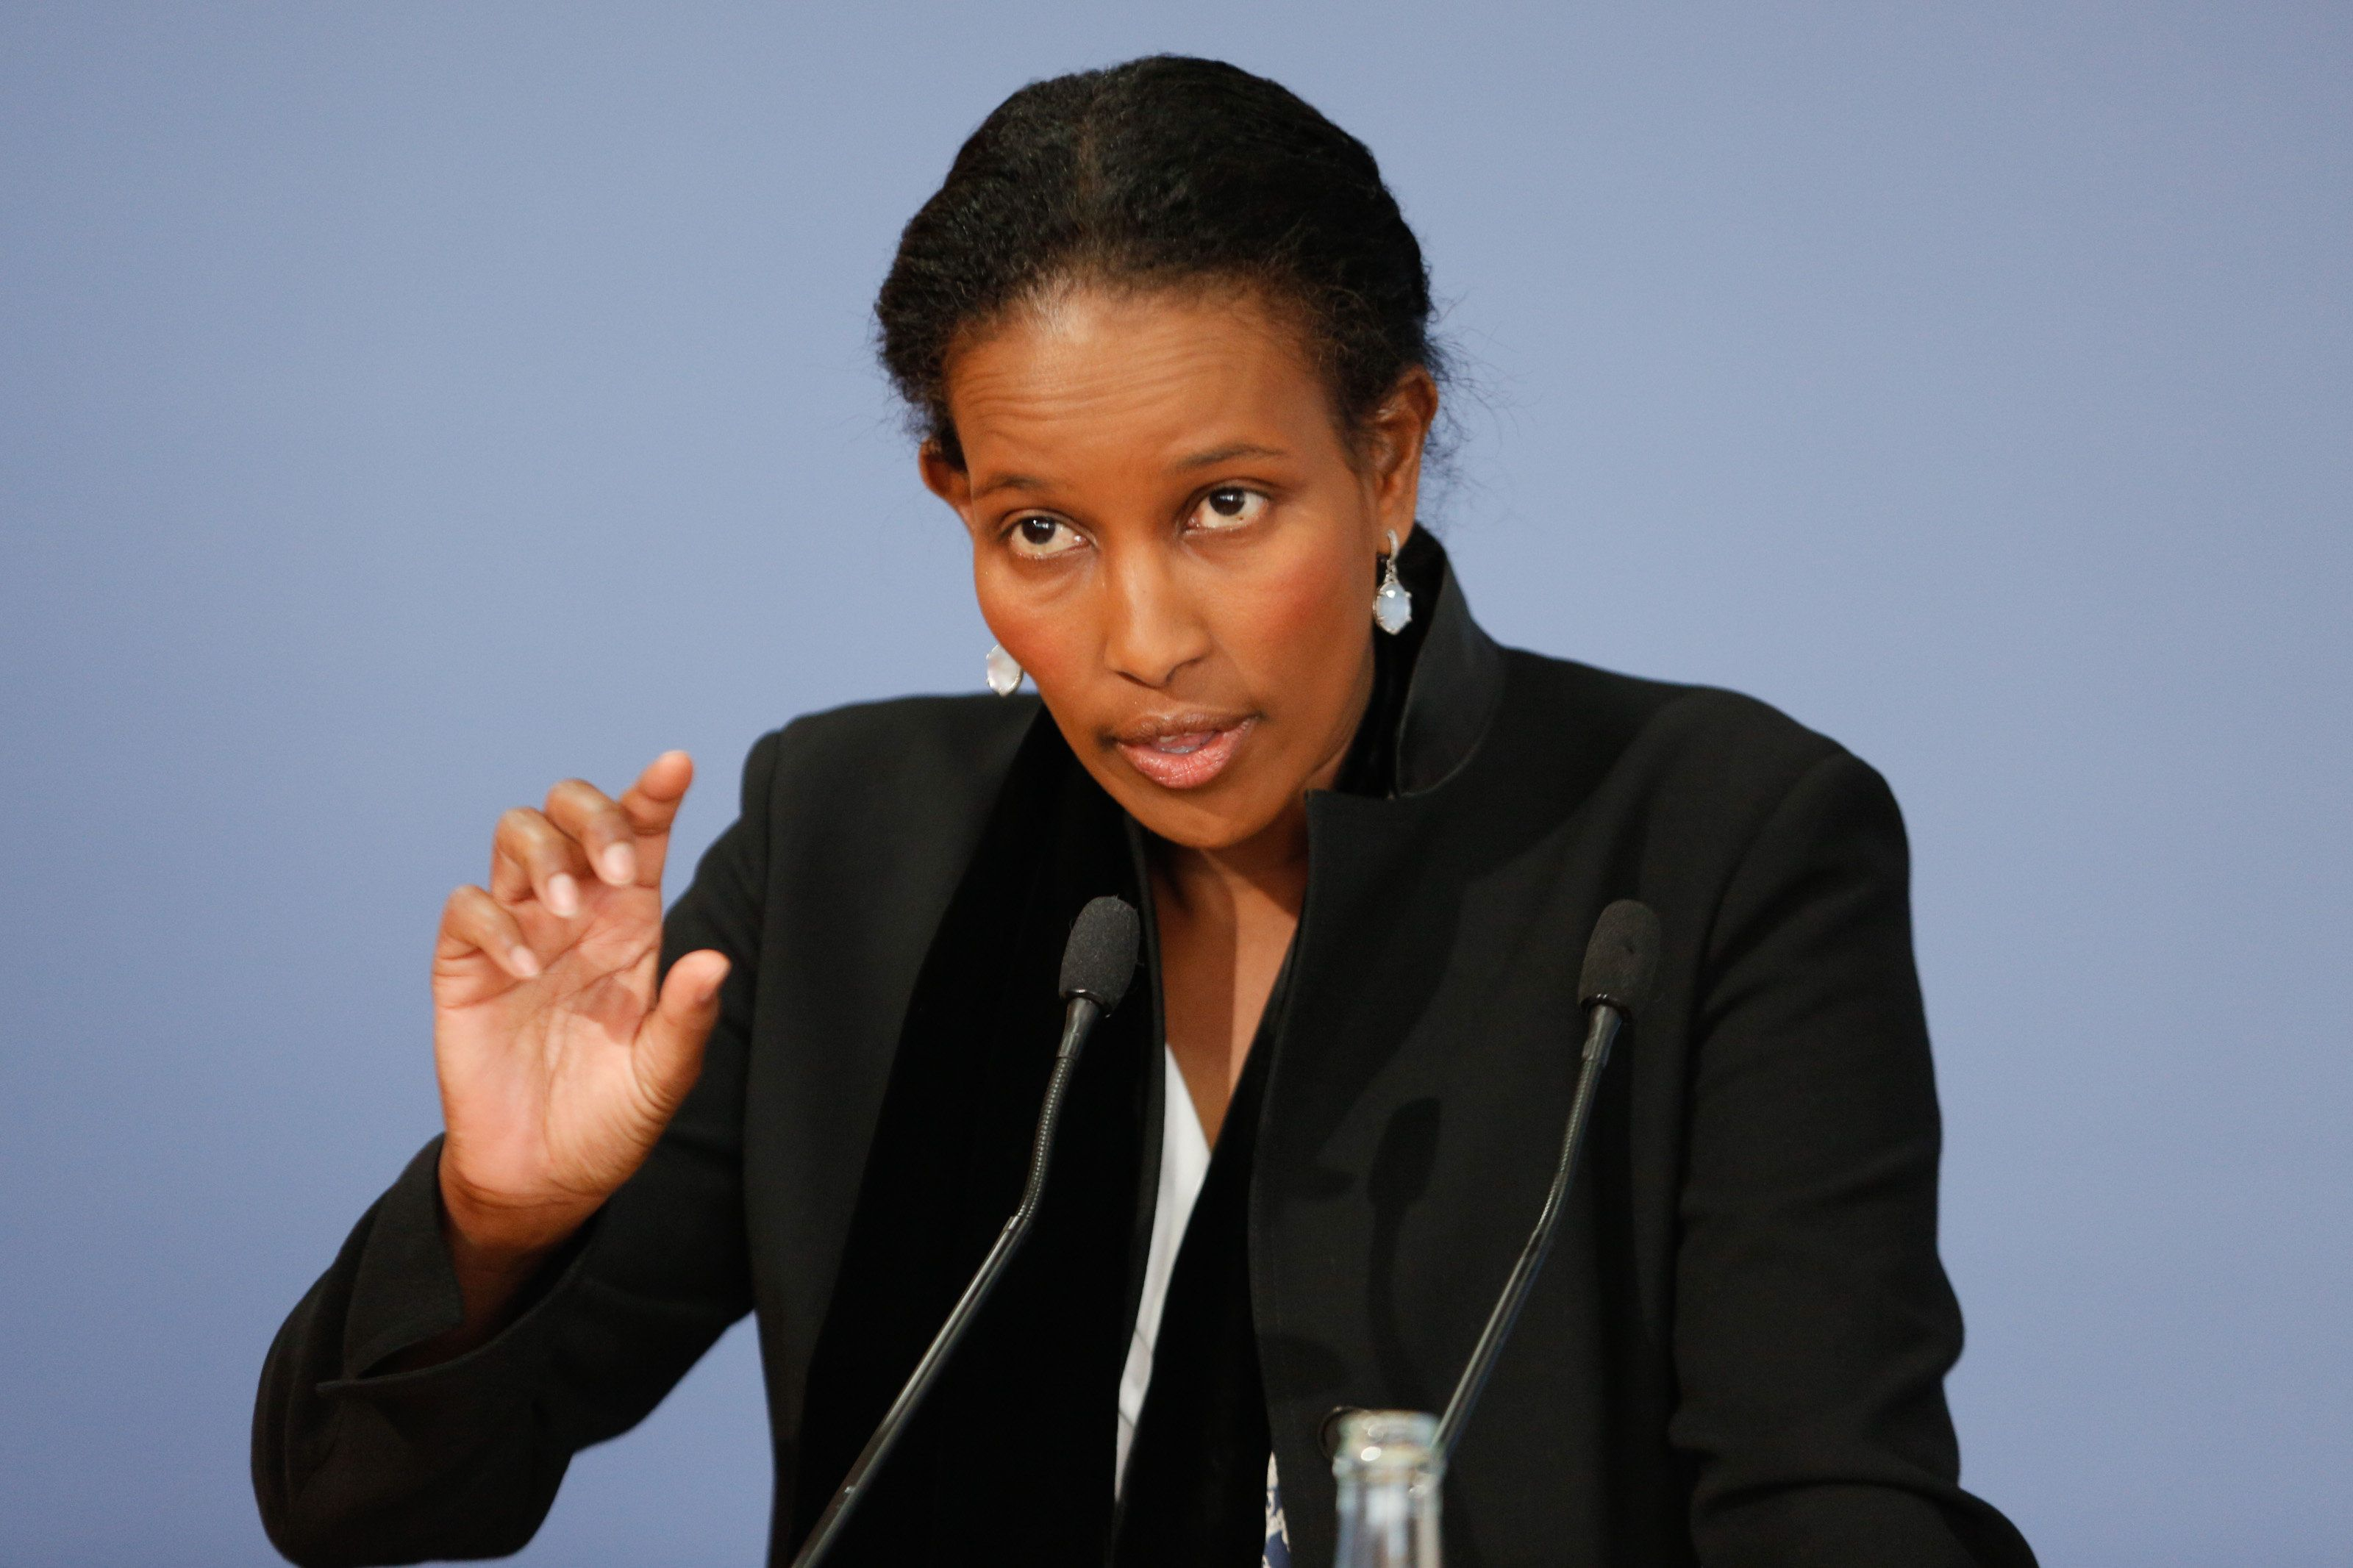 BERLIN, GERMANY - APRIL 13: Author Ayaan Hirsi Ali attends a book presentation of 'Reformiert Euch! Warum der Islam such aendern muss - Refurbished you! Why Islam must change' on April 20, 2015 in Berlin, Germany. Ayaan Hirsi Ali, born 13 November 1969, is a Somalia-born American activist, writer and politician and is known for her views critical of Islam and supportive of women's rights. (Photo by Christian Marquardt/Getty Images)